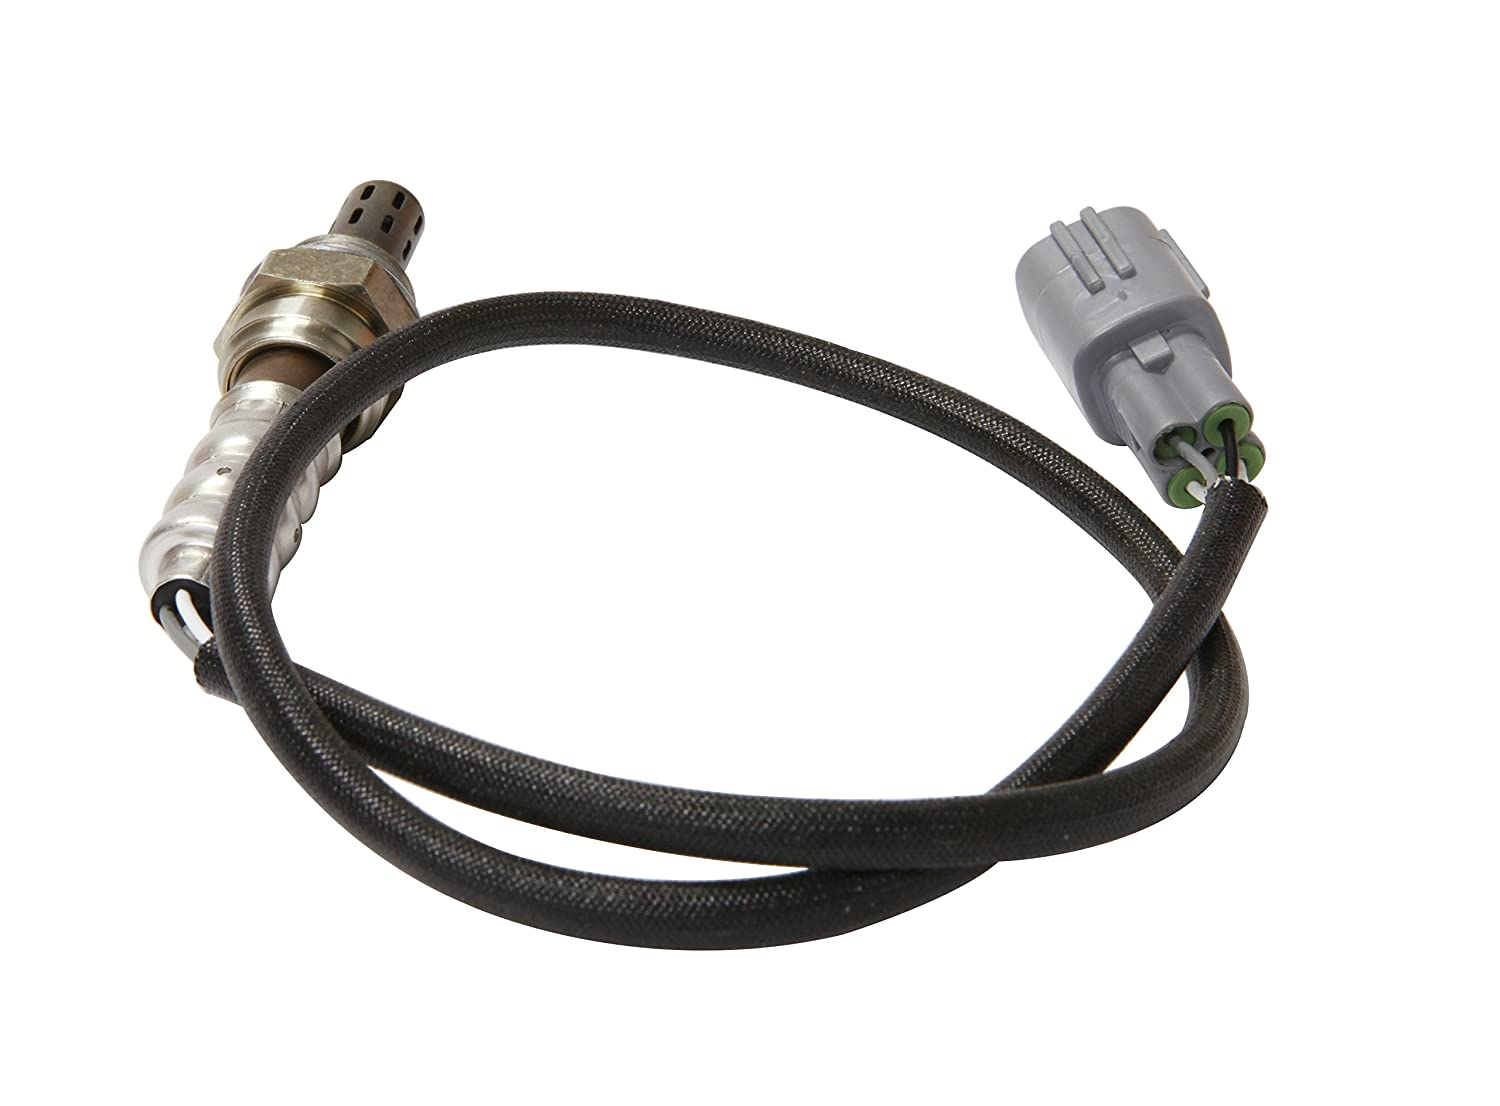 ABIGAIL 234-4626 Oxygen Sensor For Subaru Forester Impreza Legacy Outback Toyota Camry RAV4 extended Wire Length 28.35 inch compatible with 234-4626 A ABIGAIL